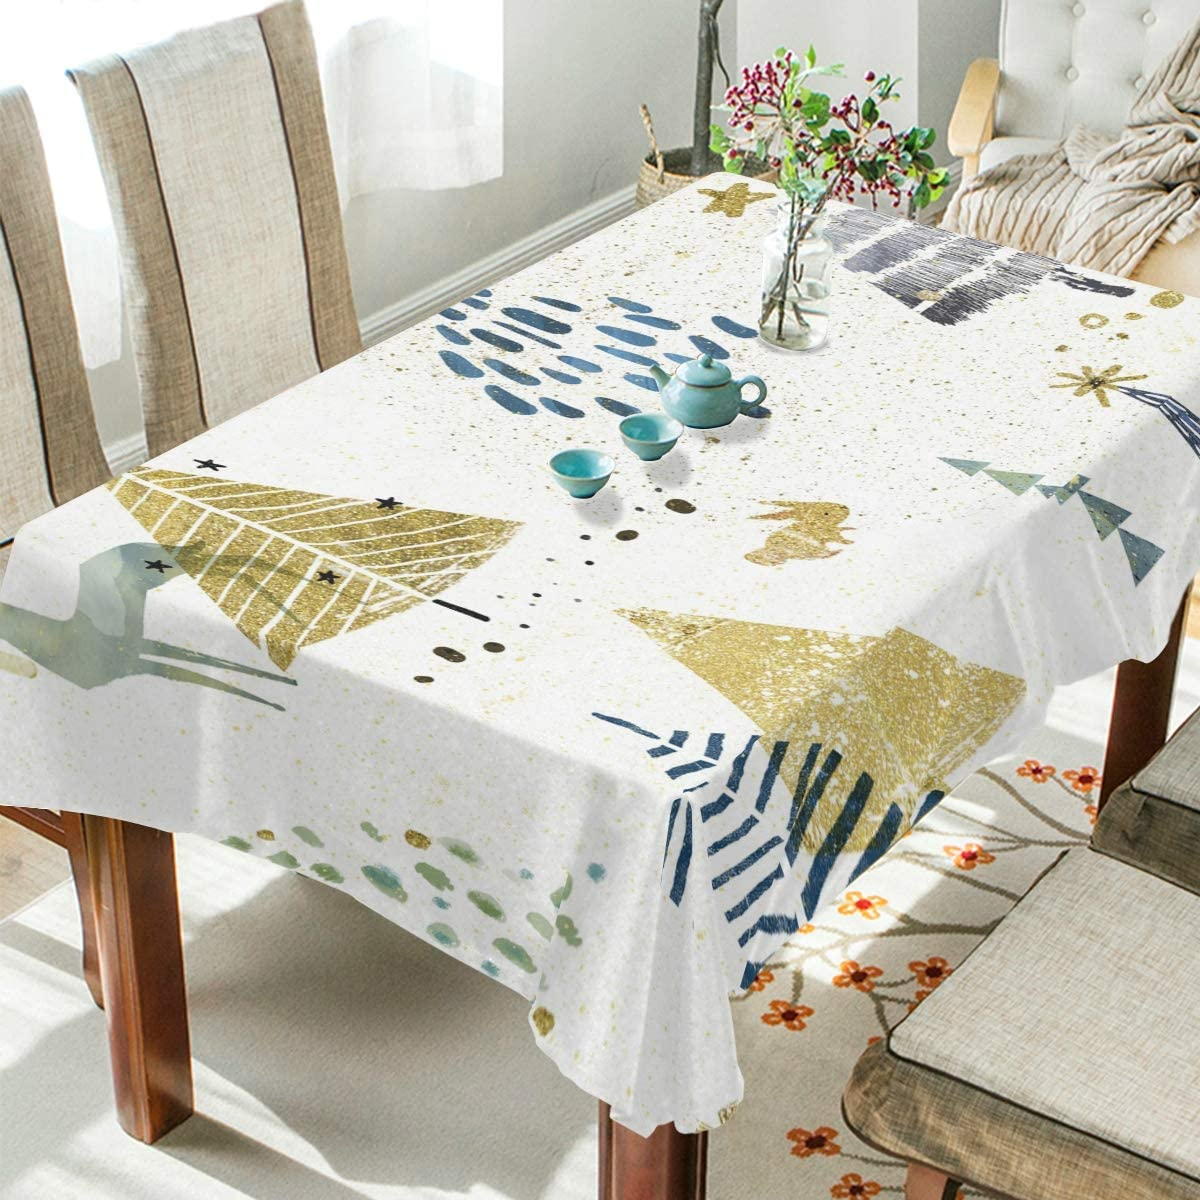 Rectangle Tablecloth Christmas Tree and Animal Washable Spill Proof Table Cloth Dust-Proof Table Cover for Kitchen Dining Room Party Tablecovers Spread Home Decoration 60 x 108 Inches